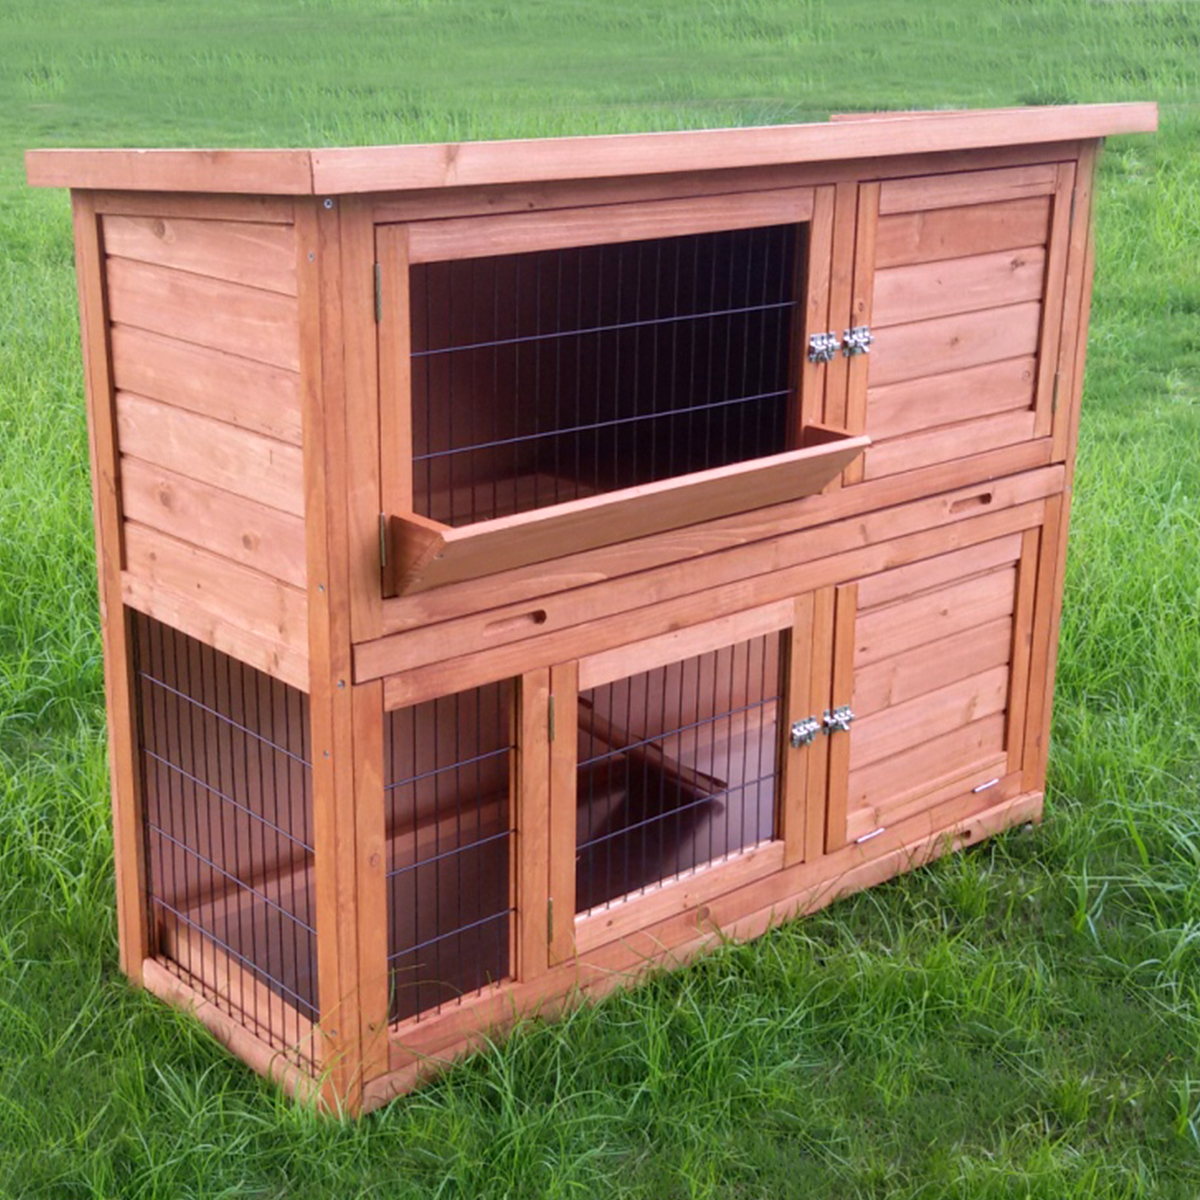 Deluxe 4ft extra large double rabbit hutch guinea pig run for Extra large rabbit cage